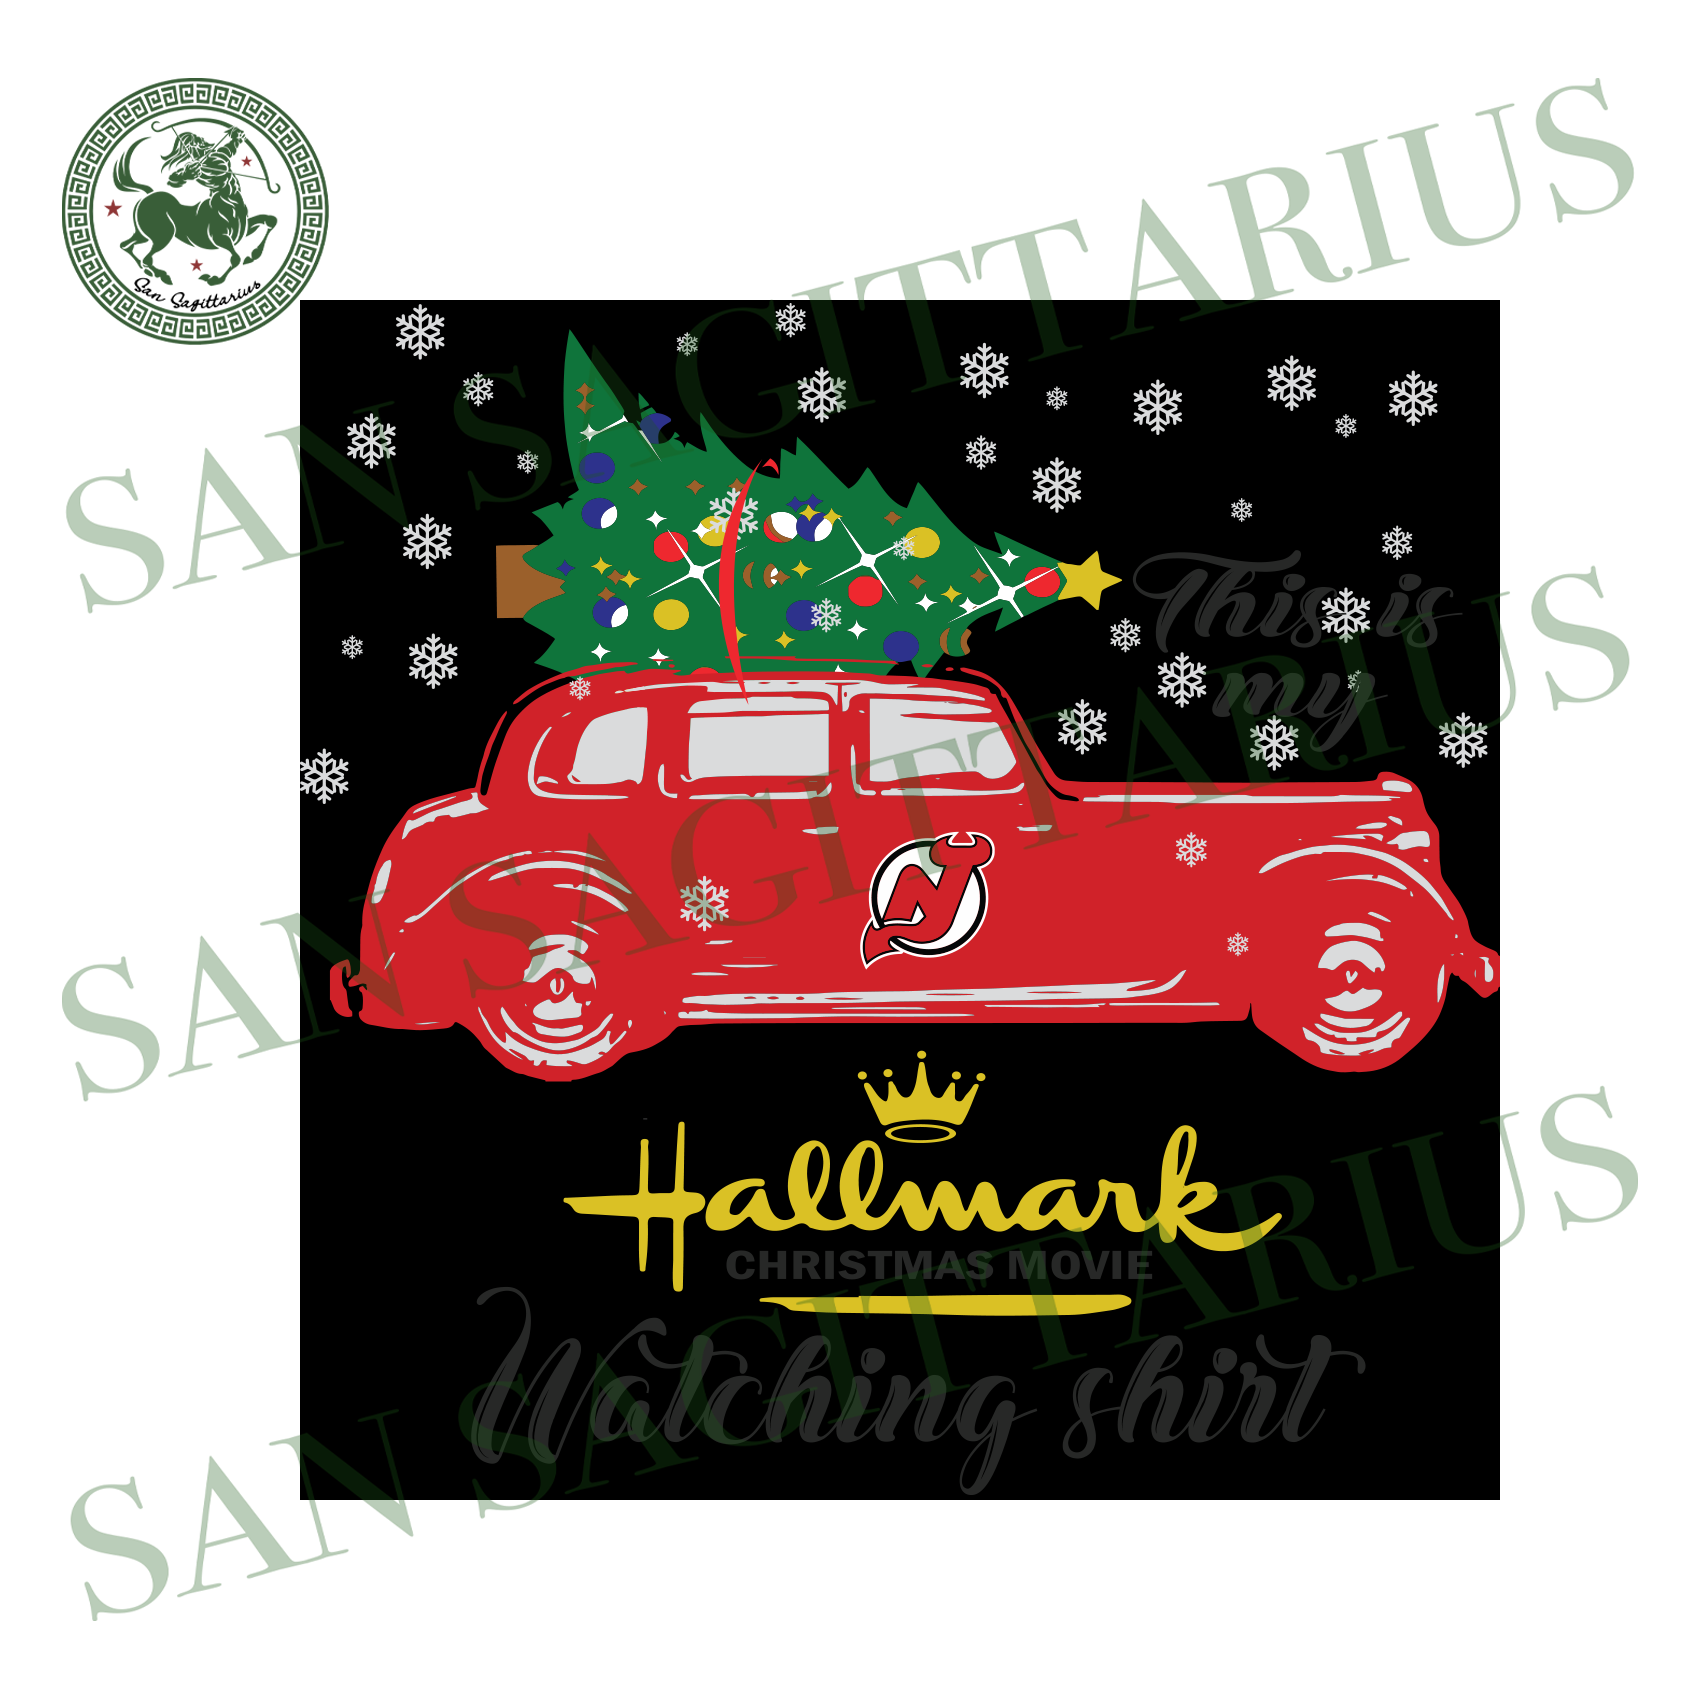 New Jersey Devils This Is My Hallmark Christmas Movie Watching Shirt, Sport Svg, Christmas Svg, New Jersey Devils Svg, NHL Sport Svg, New Jersey Devils NHL Svg, New Jersey Devils NHL Gift, Ho